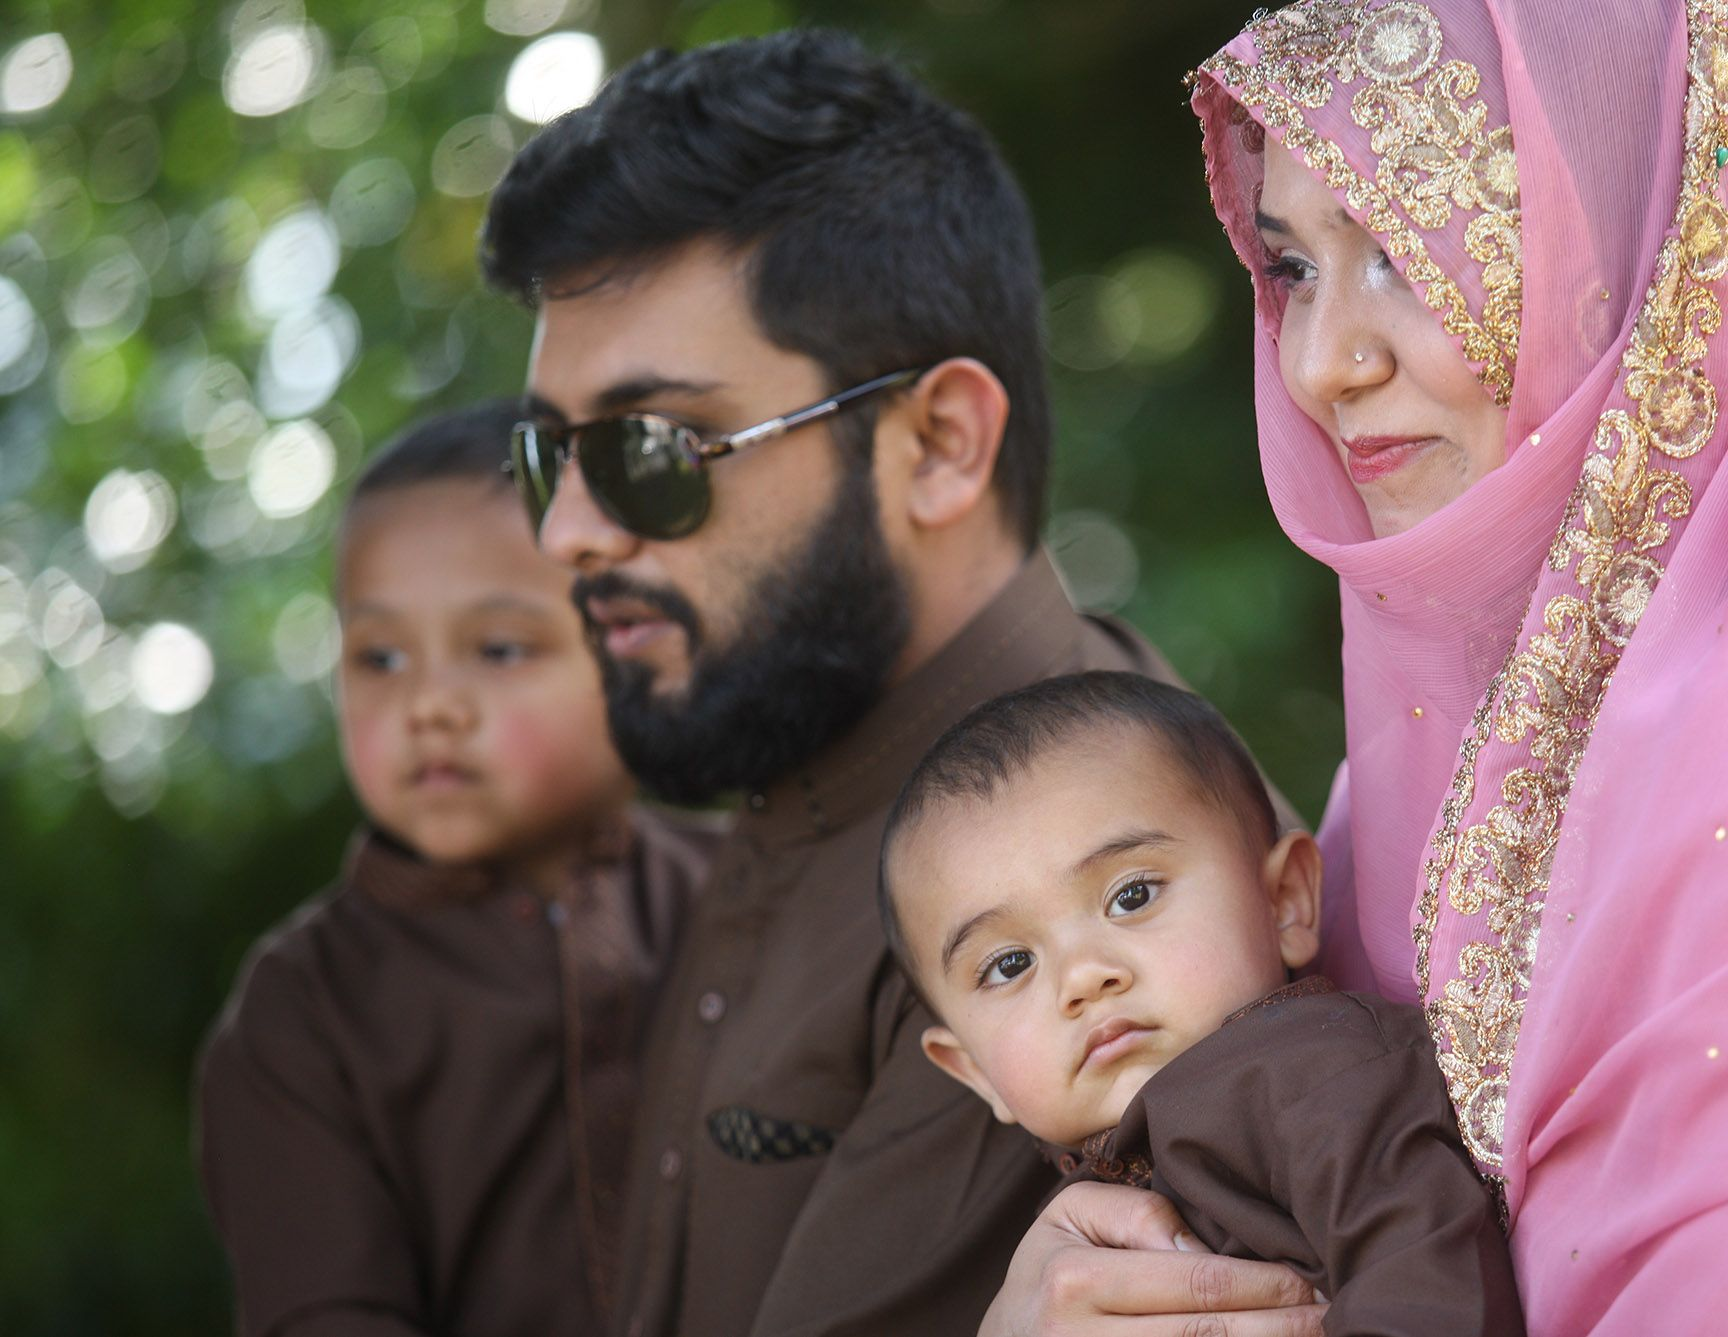 EID MUBARAK: The garden party and barbecue allowed families to celebrate together